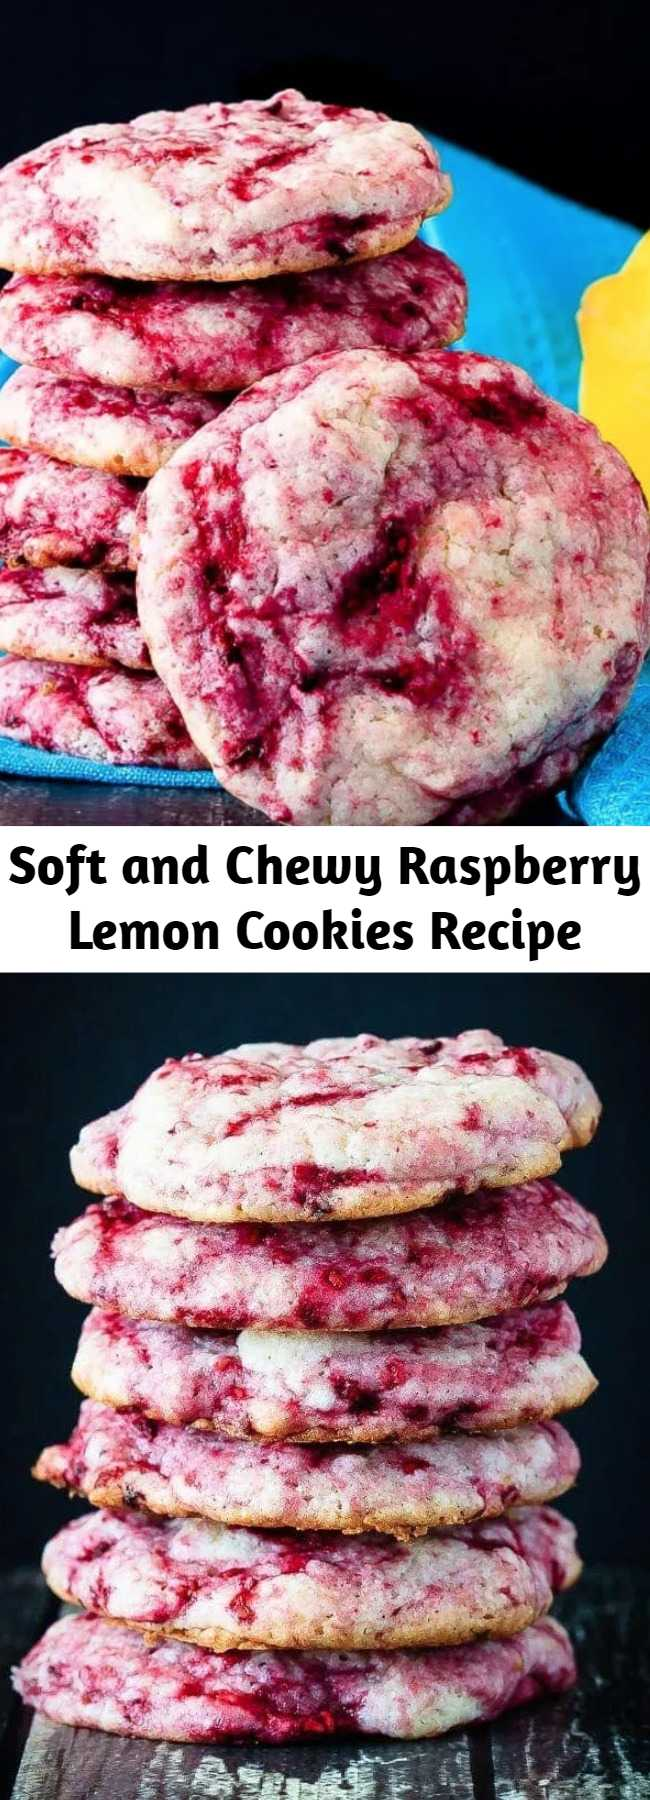 These raspberry lemon cookies are ultra soft and chewy - quick and easy to make and so tasty everyone loves them. One of the best cookies I've made!